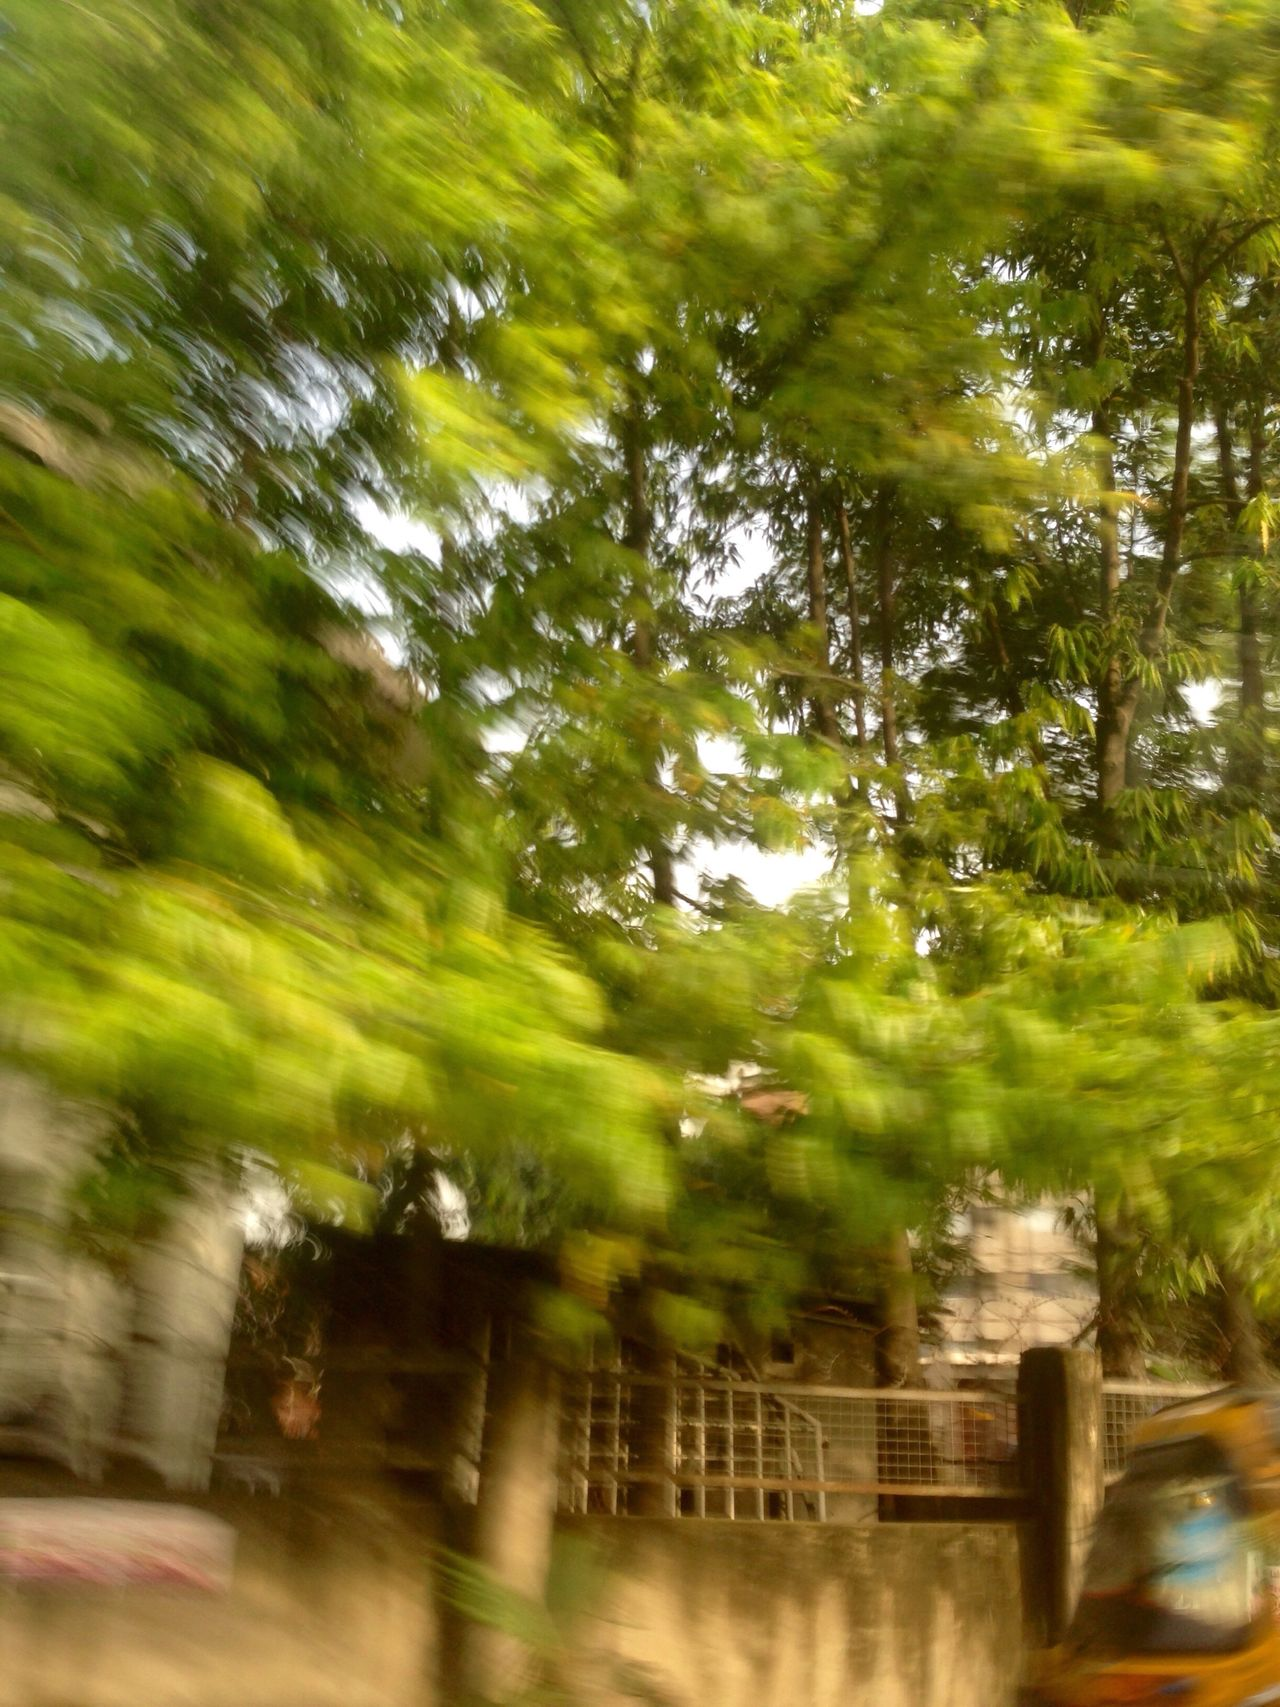 Blurred Motion Blurry Blurred Photos. Motion Ontheroad Drivebyphotography Driving Tree Trees Outdoors Outdoor Outdoor Photography No People Nature Day Nigeria Green Green Color In Motion Art Art Is Everywhere Beauty In Nature